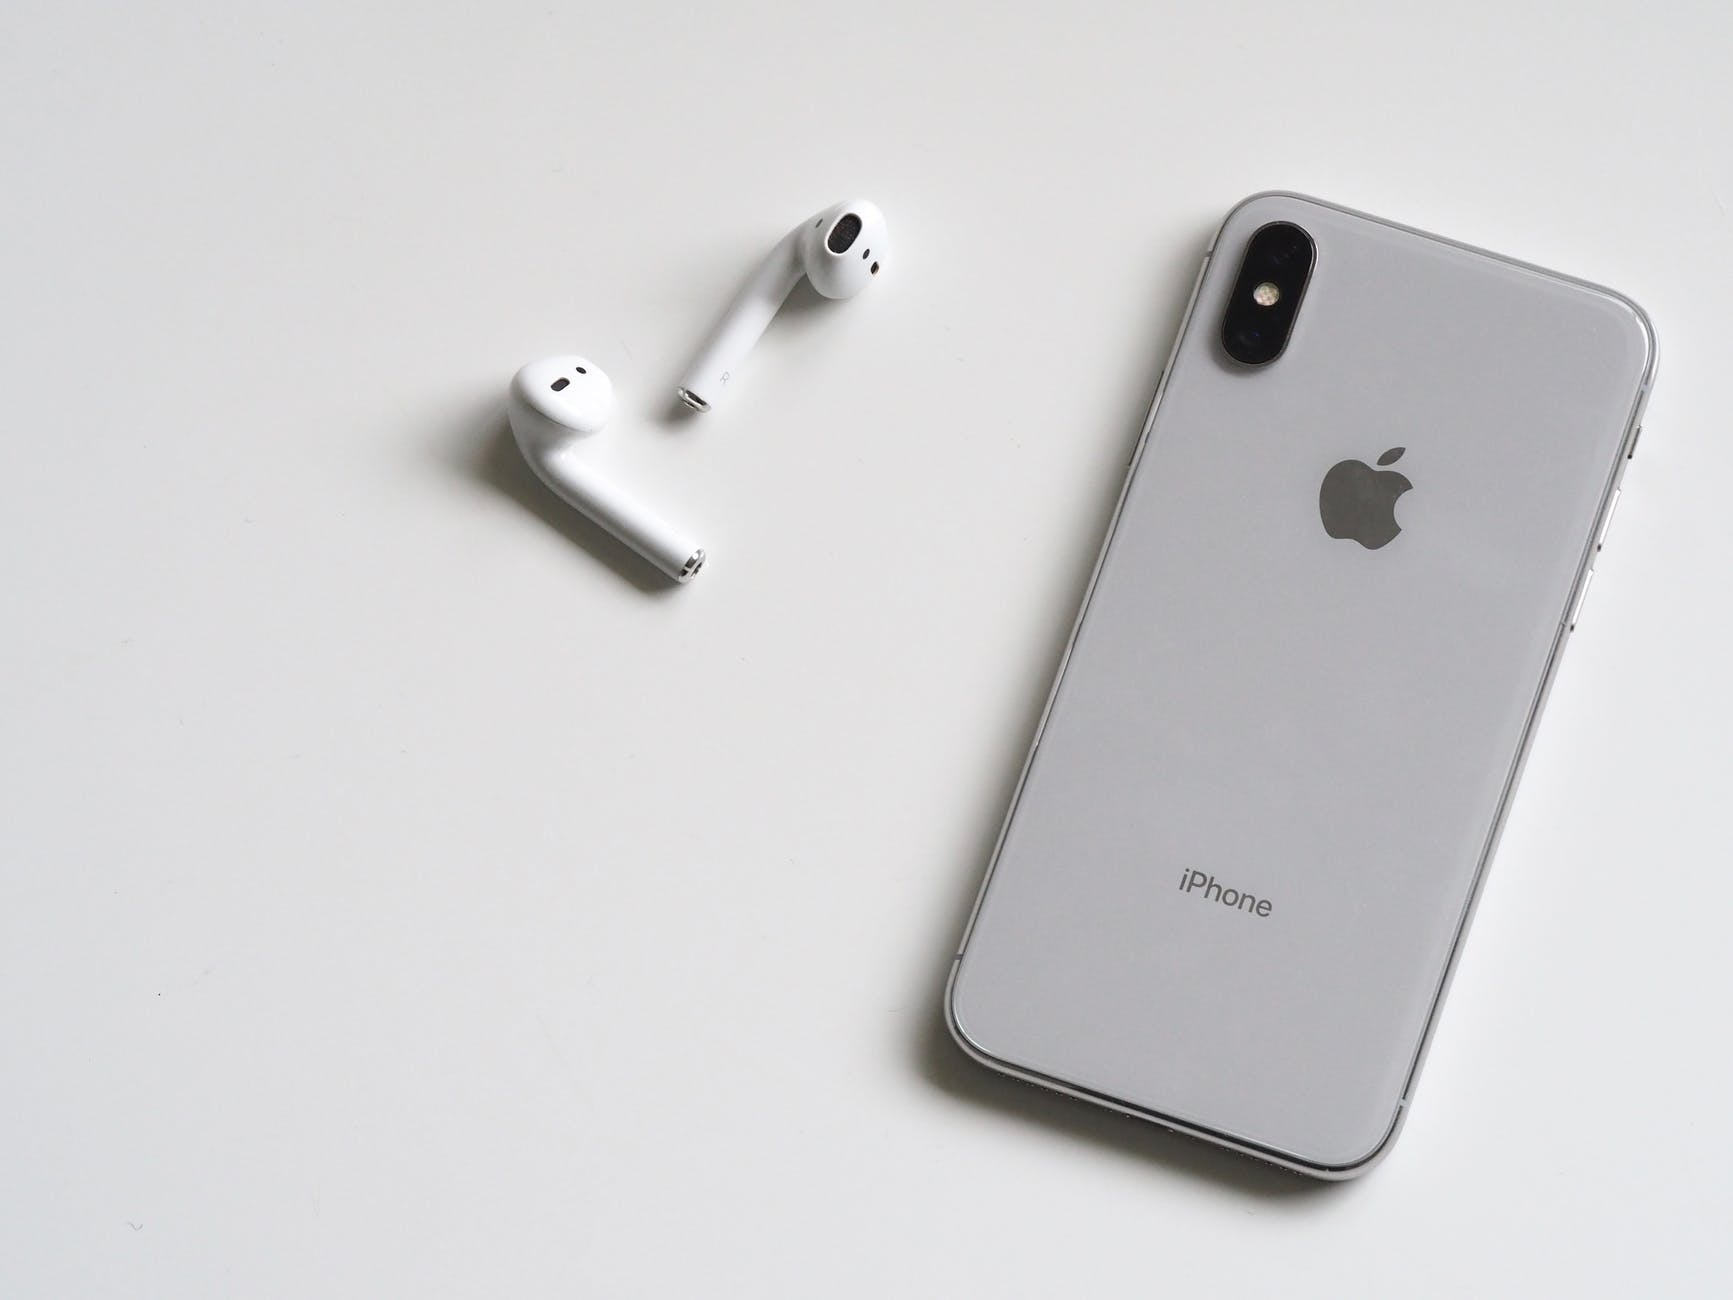 iphone super sale on paytm mall offer huge discounts upto 25000, paytm mall,paytm mall offer,paytm mall student laptop-shop up to rs 20,paytm,how to book products free on paytm mall,paytm mall cashback,paytm cashback,paytm mobile recharge offers,paytm mall student laptop-shop up to rs 20000/- cashback,iphone 6 seall rs 20000,paytm offer,paytm mall discount,paytm mall offers,paytm cashback offer,paytm mall free offers,iphone offer 40% discount,mall offer